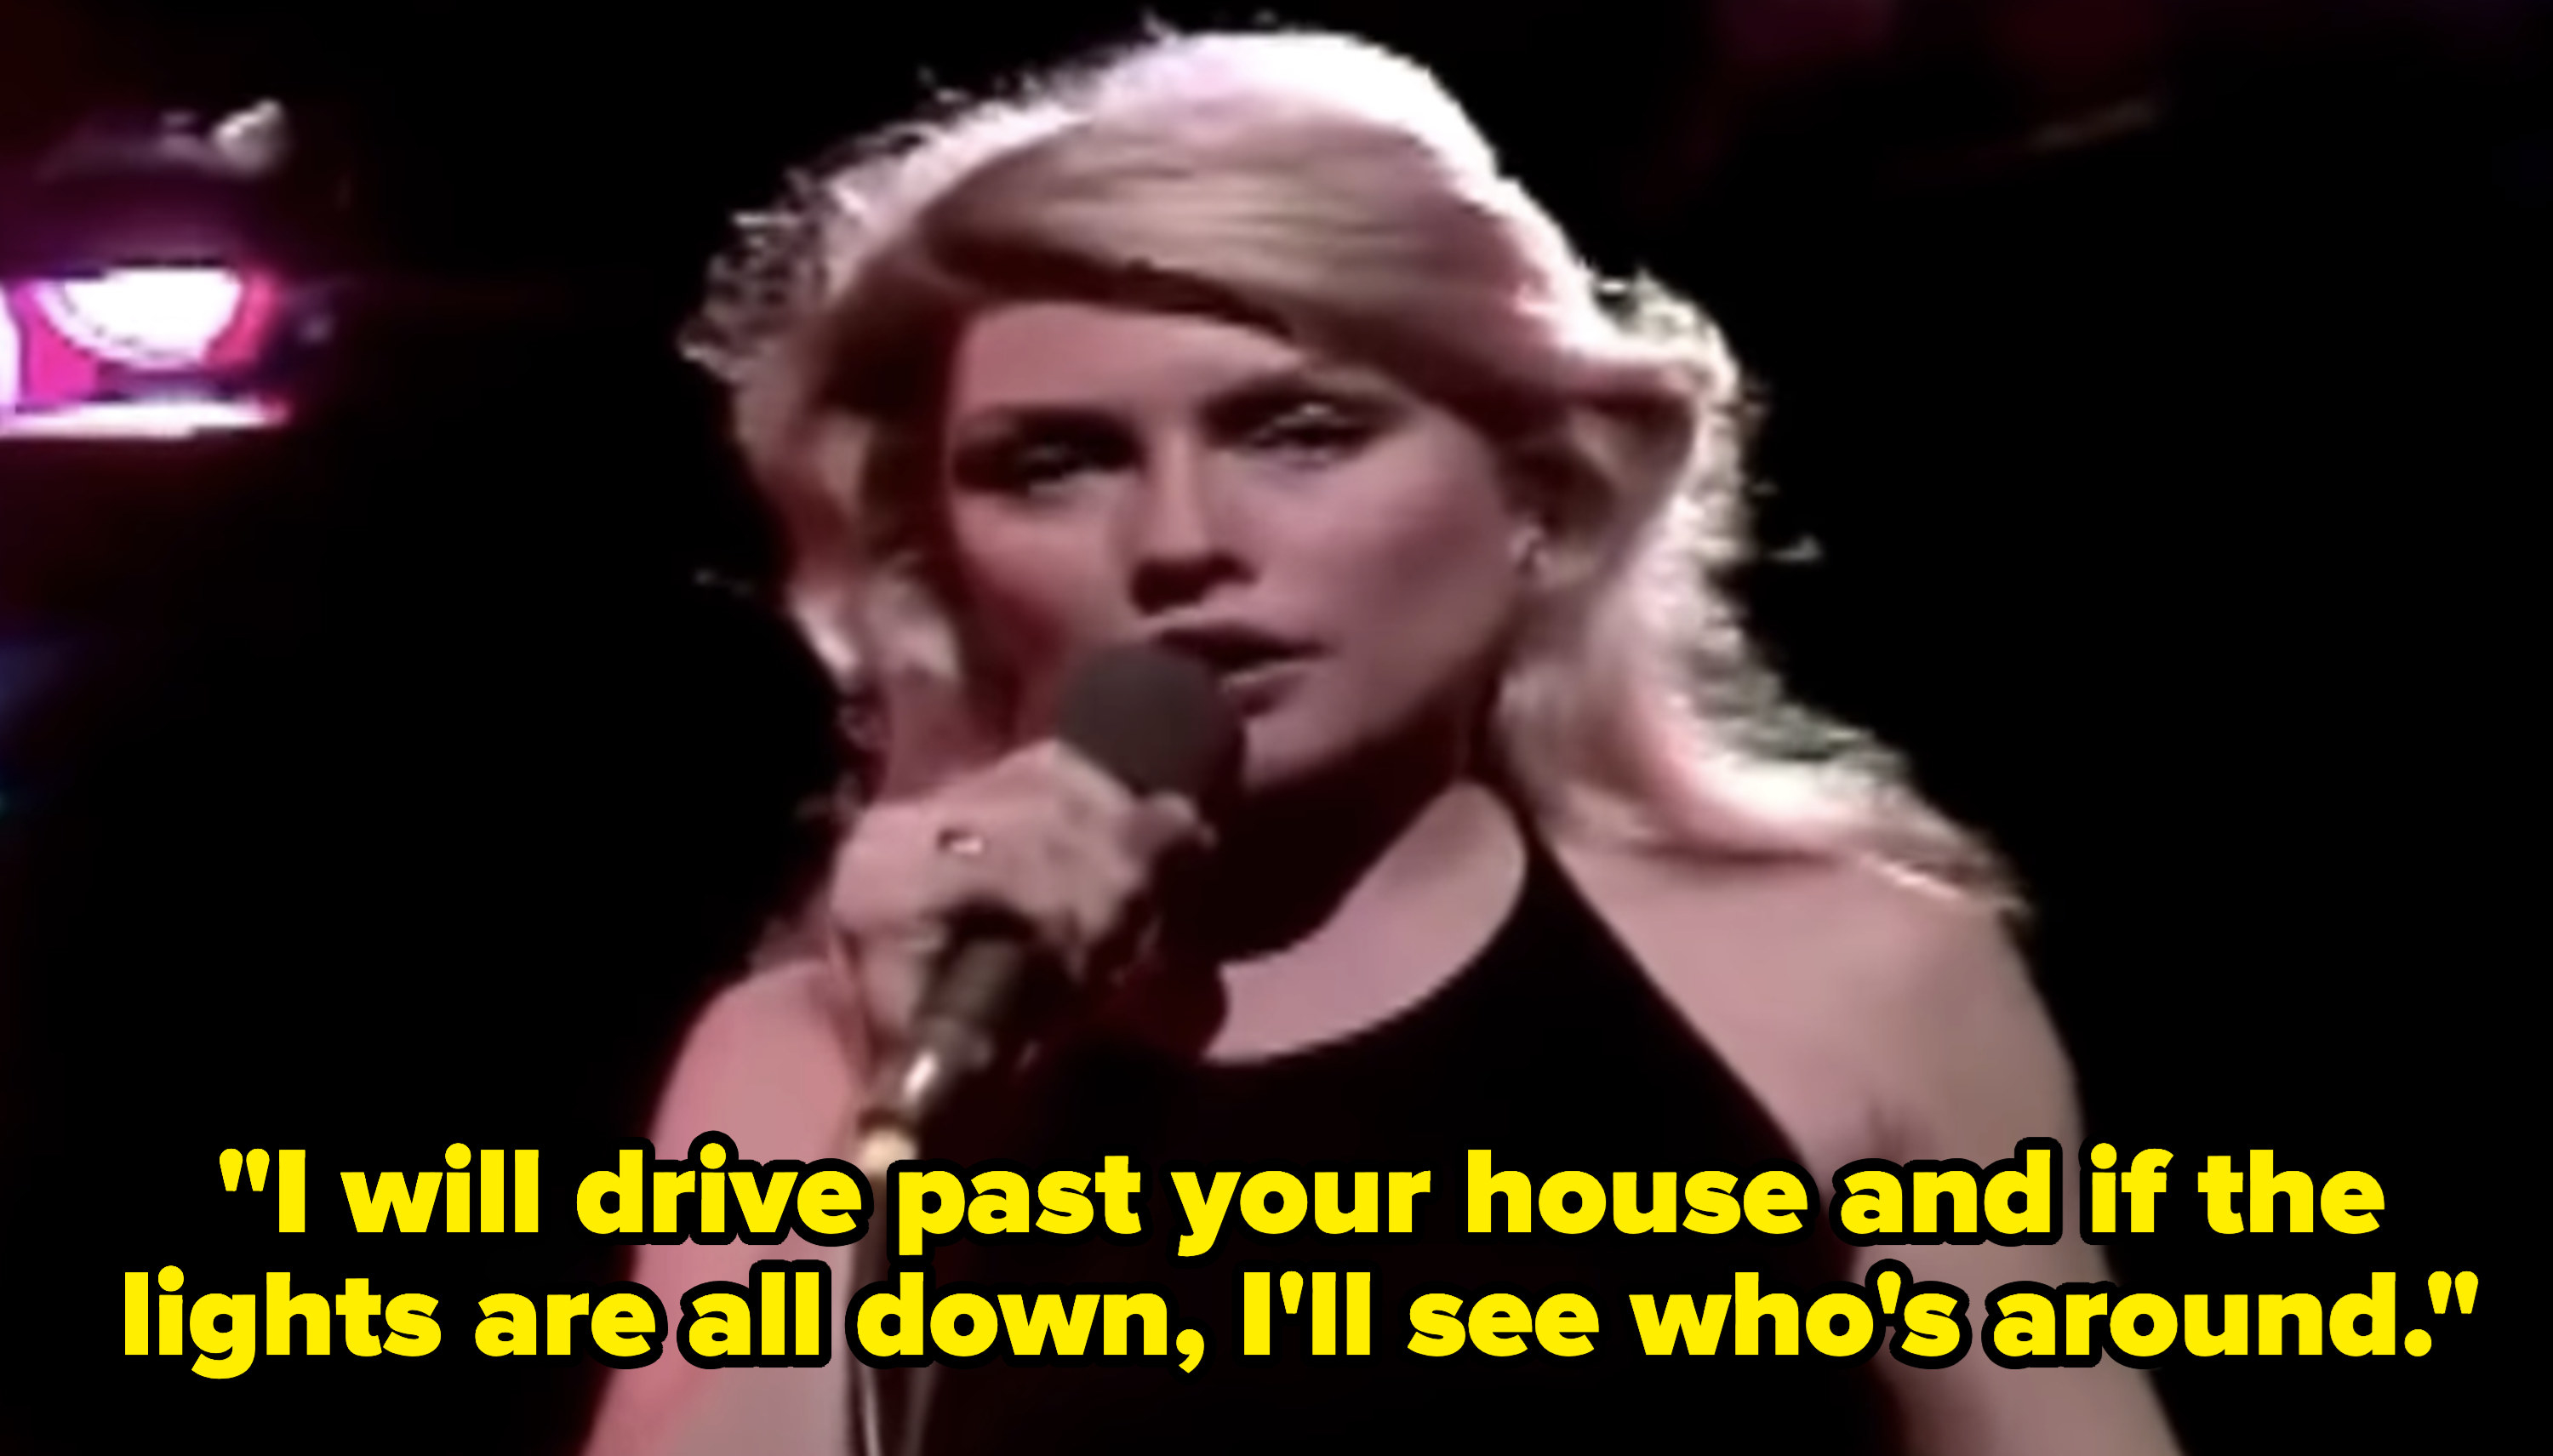 """Blondie singing, """"I will drive past your house and if the lights are all down, I'll see who's around"""""""